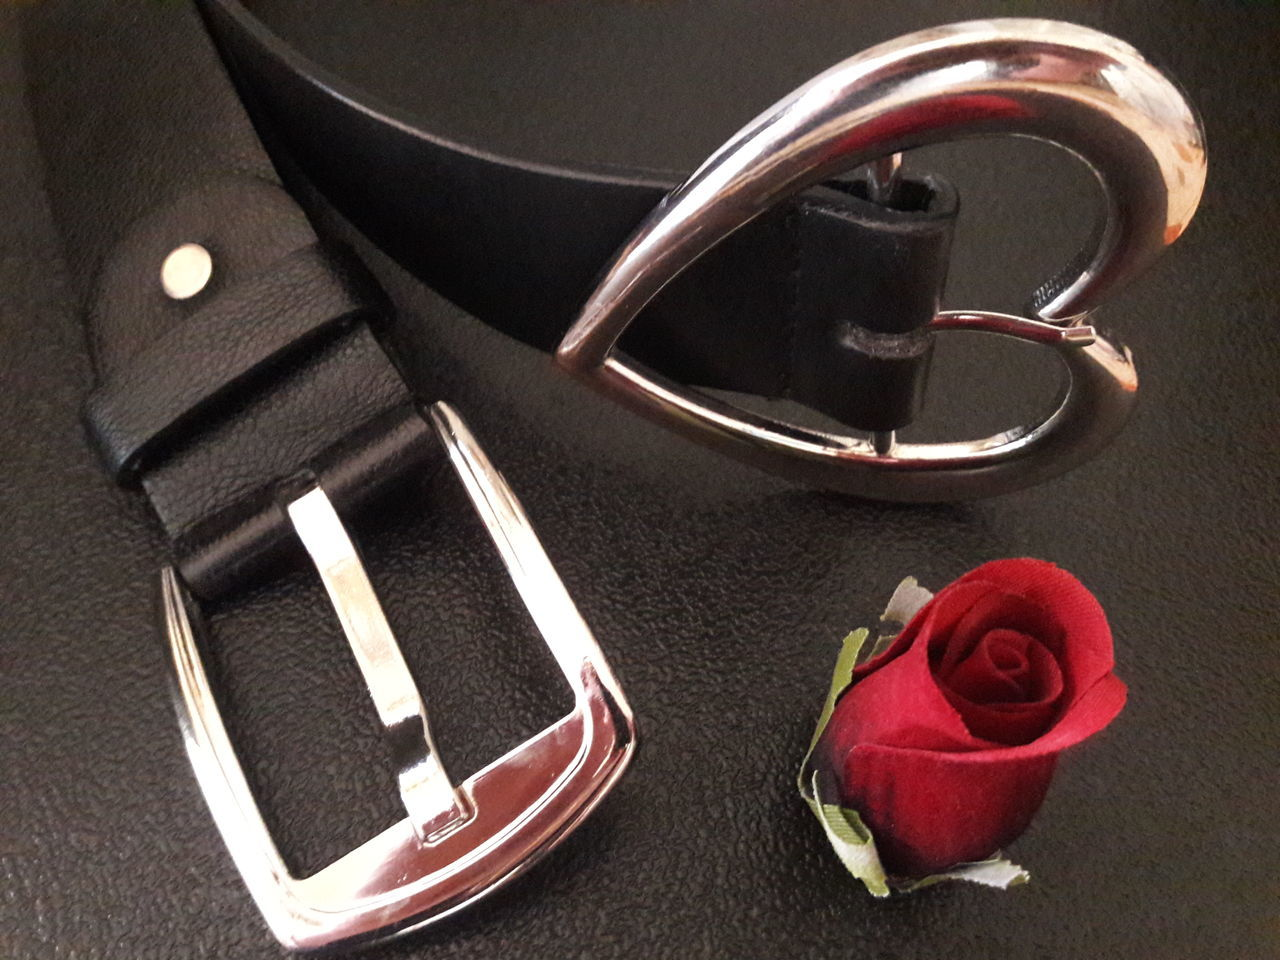 """Hold Me Tight"" Fashion Close-up Leather Belt  Man's Belt Woman's Belt Black And Red Black And Silver Conceptual Feelings Couple Tie Tight Love Tighten To Hug Relationships Close Romance Accessory Wear Two Abstract Love Welcome To Black steel Buckle EyeEmNewHere"